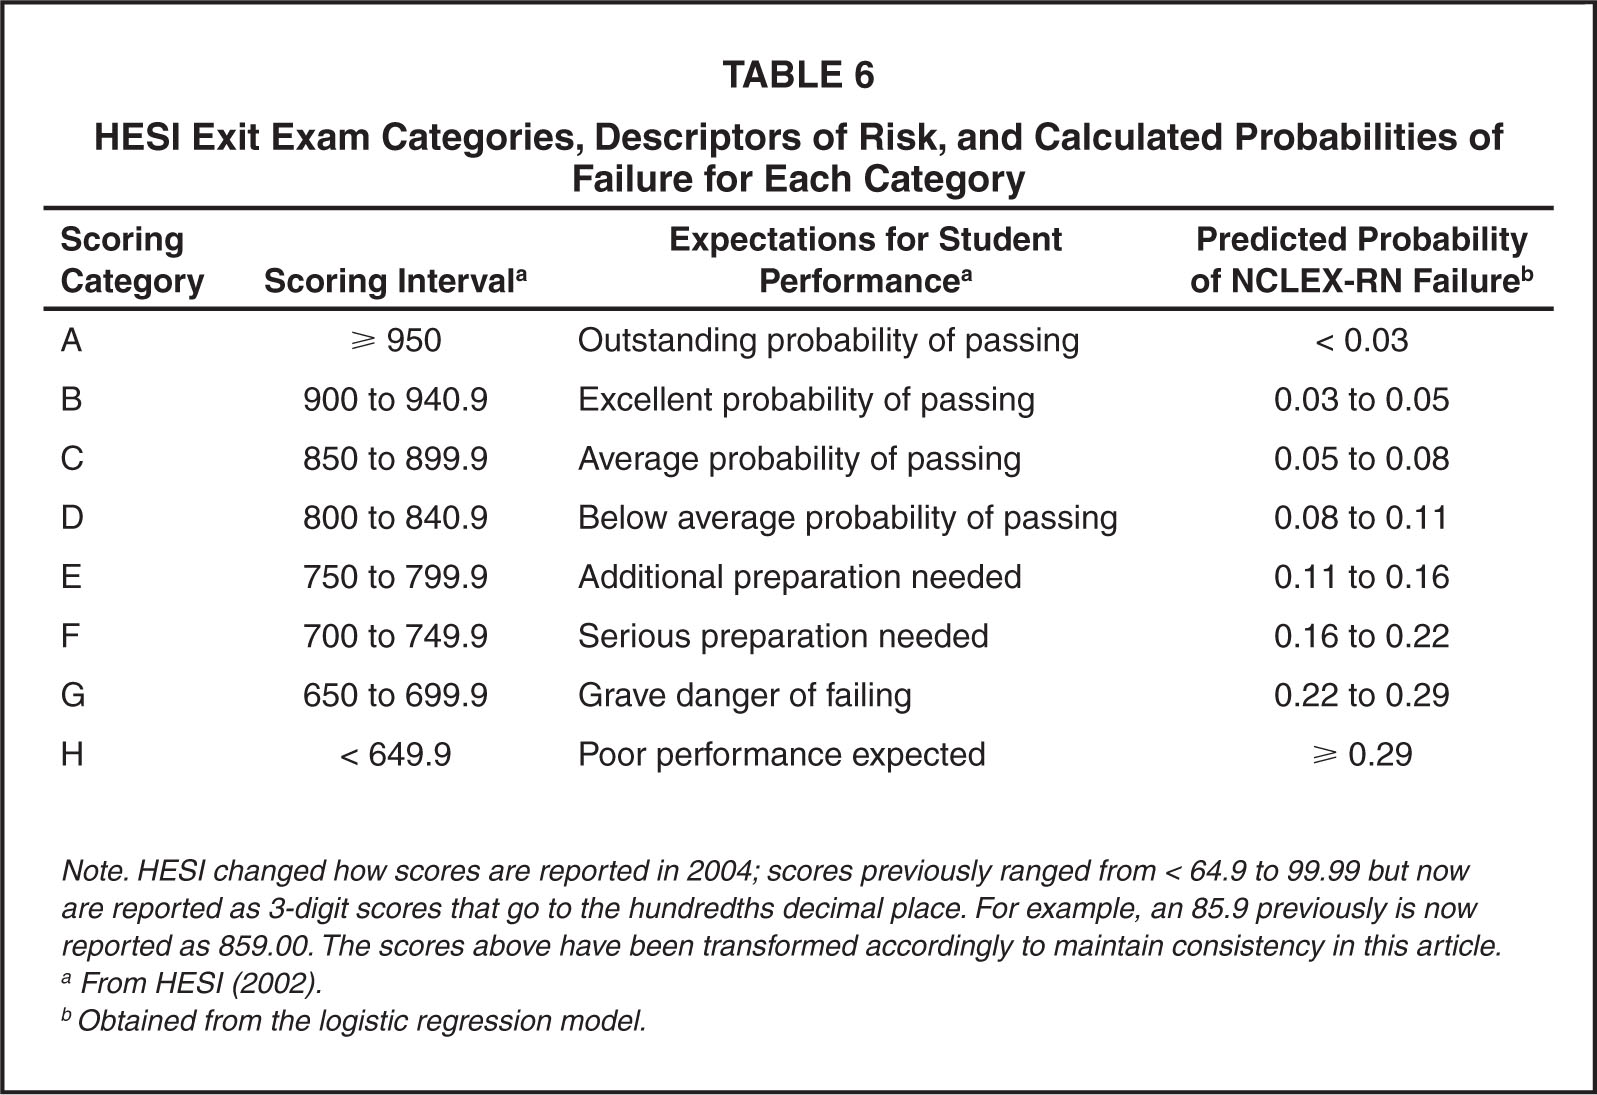 HESI Exit Exam Categories, Descriptors of Risk, and Calculated Probabilities of Failure for Each Category